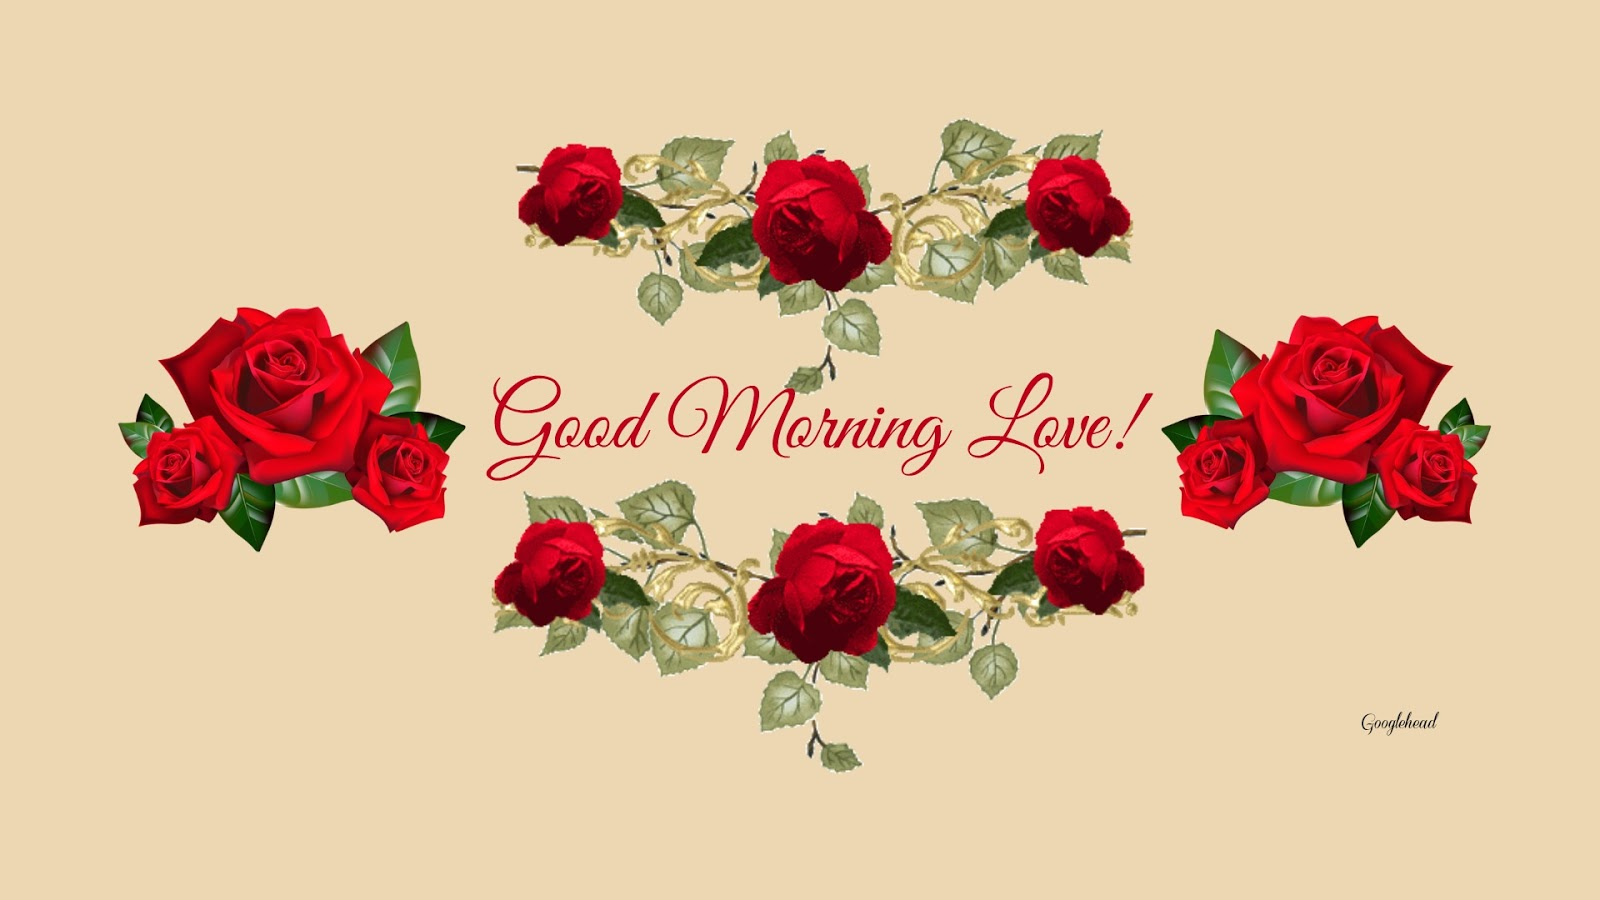 Good Morning Love Images with Rose